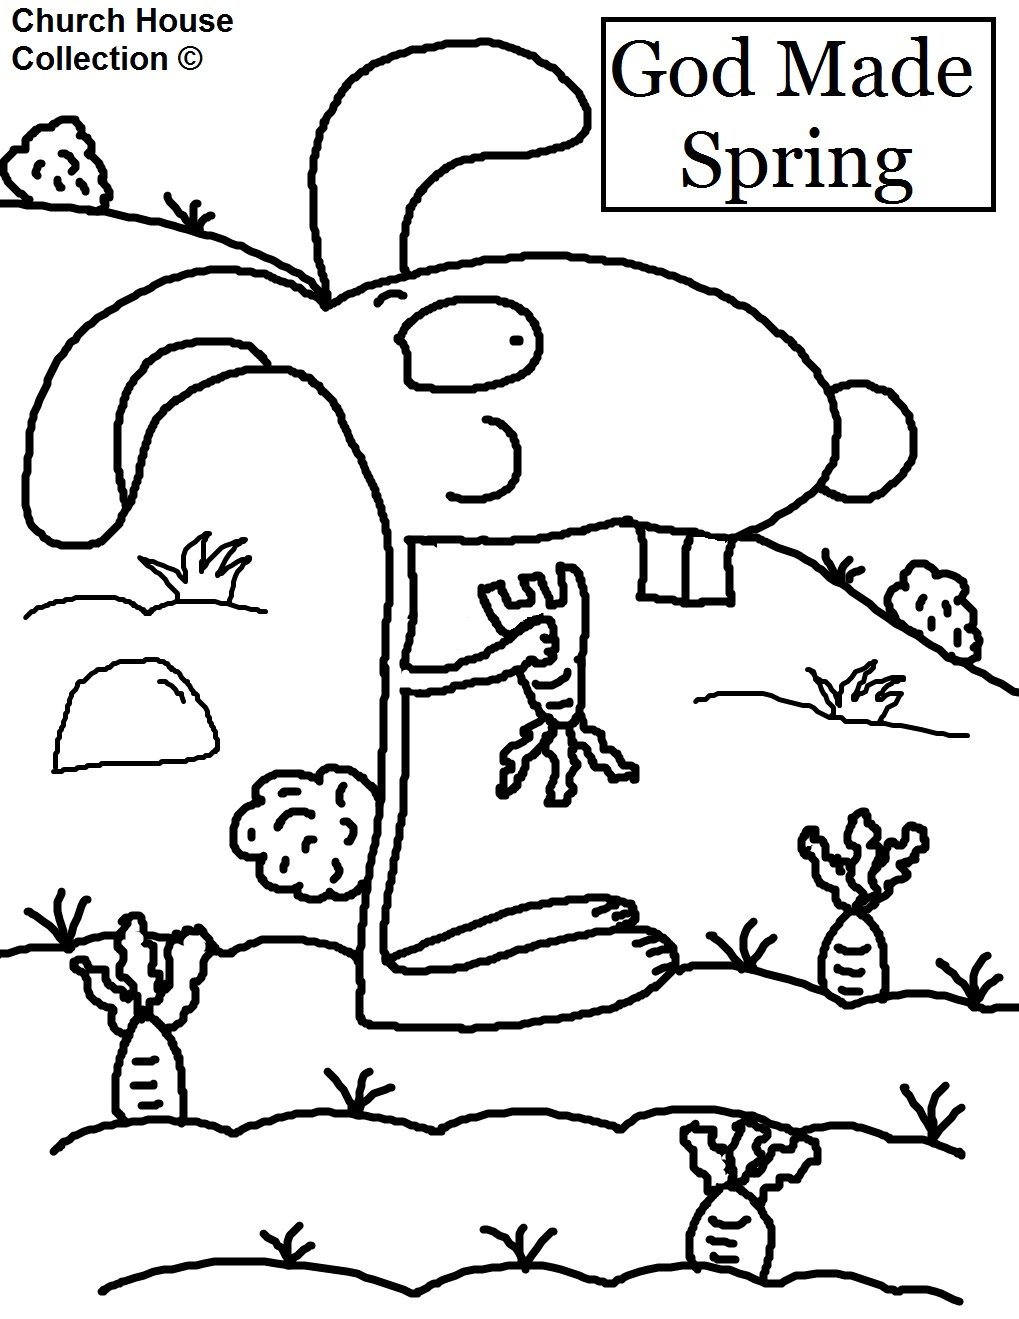 god made coloring pages - photo#11